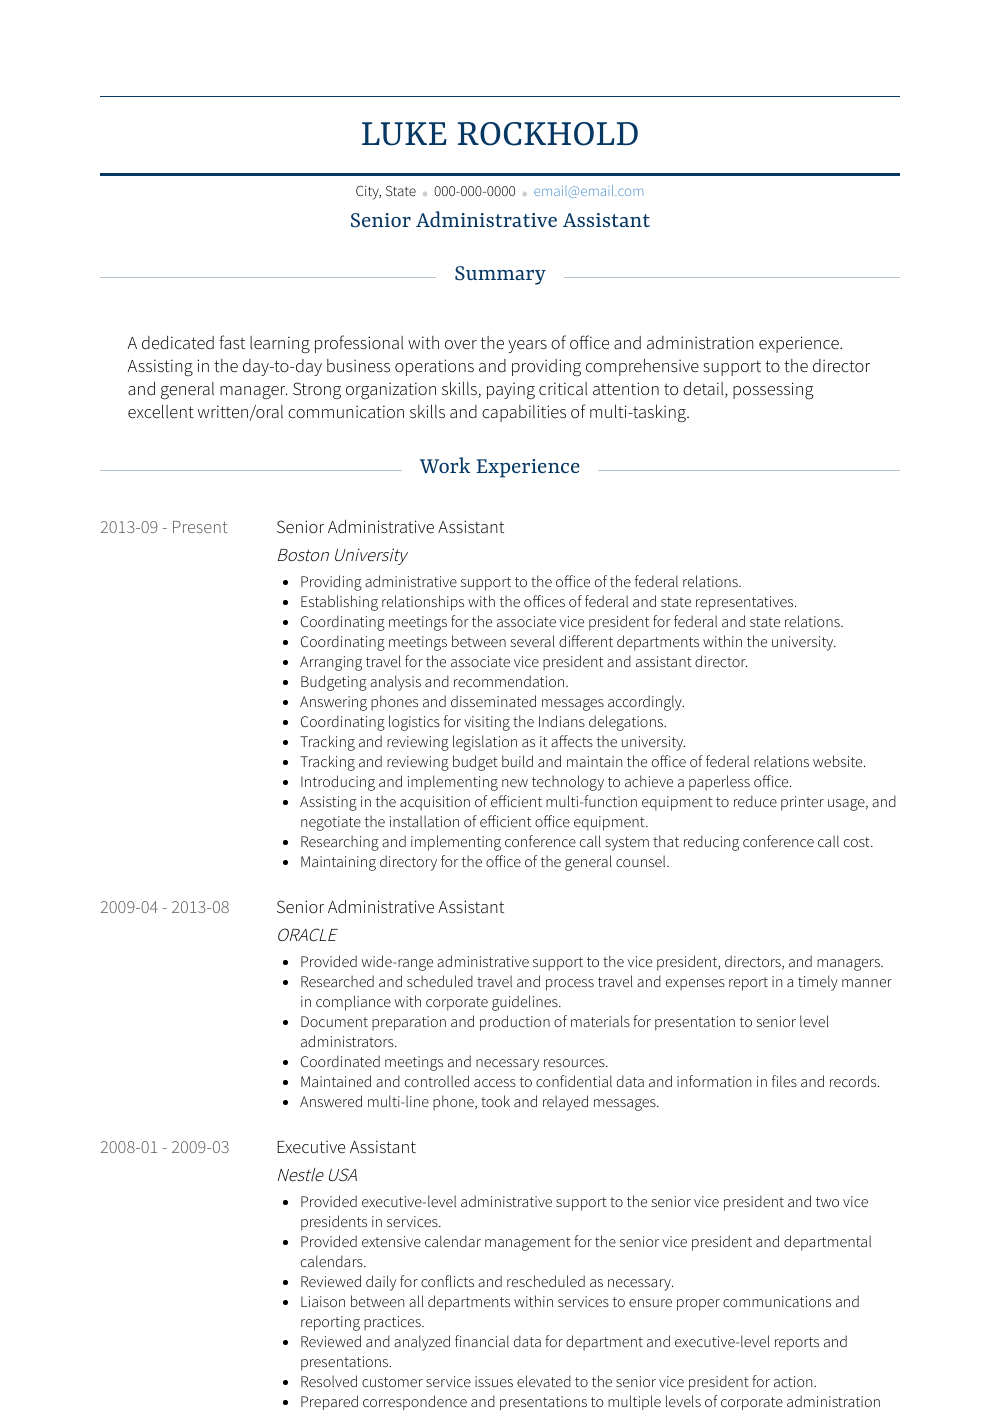 Sr Administrative Assistant Resume Administrative Assistant Resume Samples Templates Visualcv